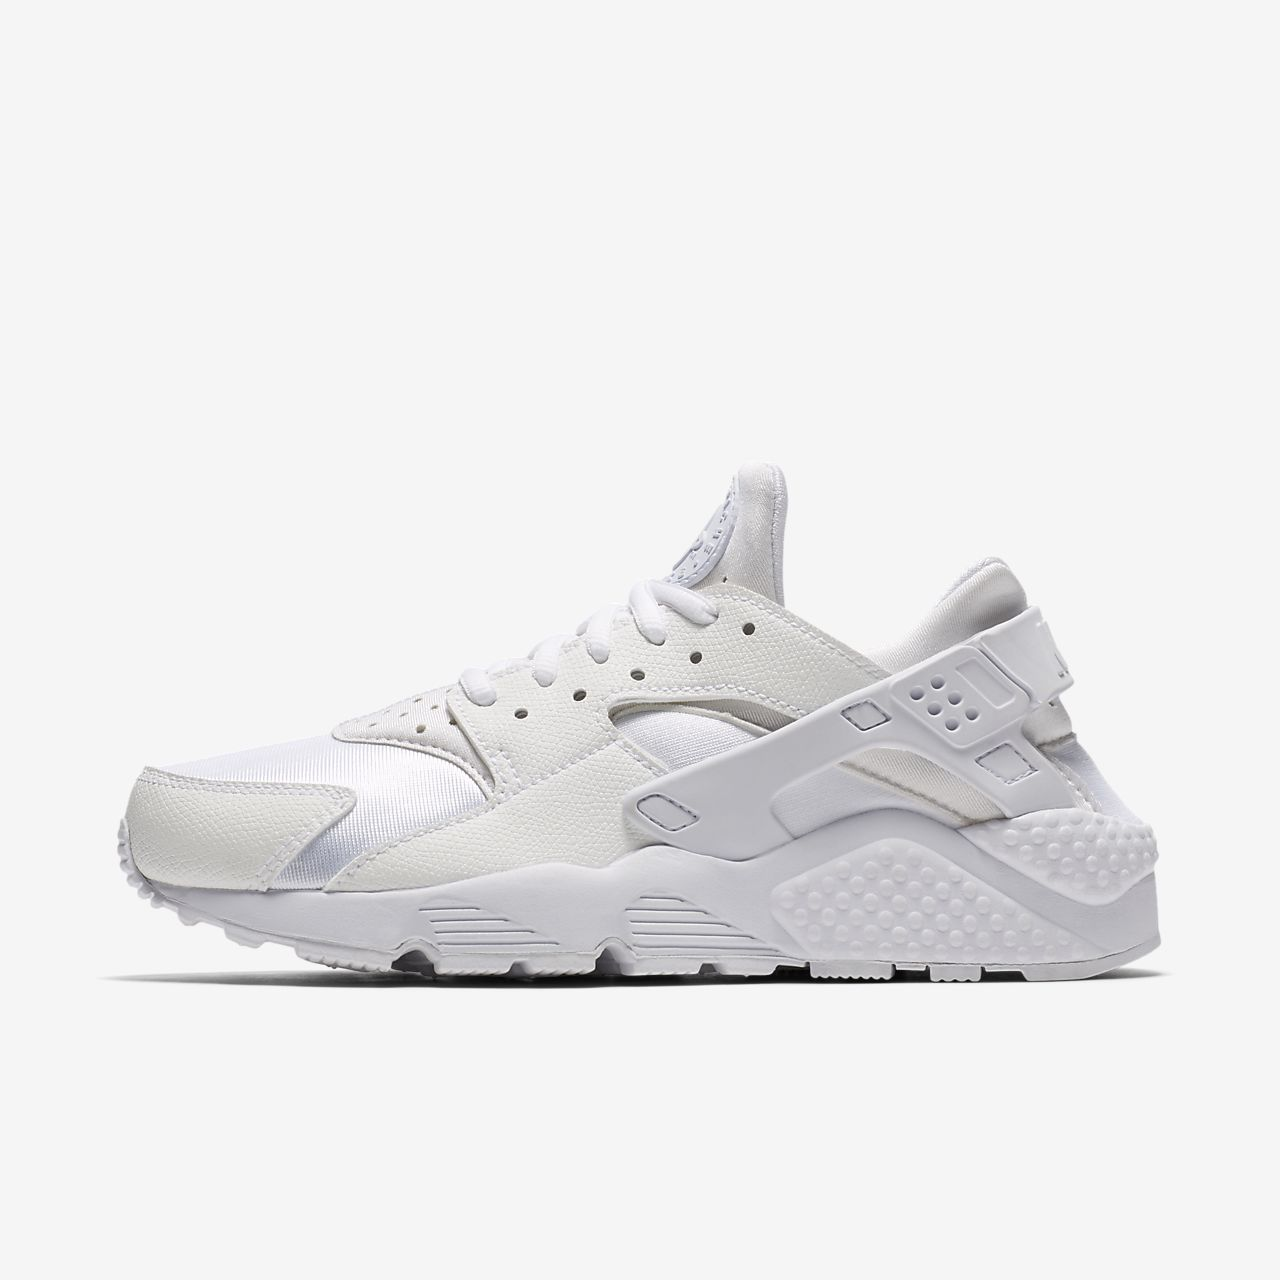 air huarache sneakers with leather